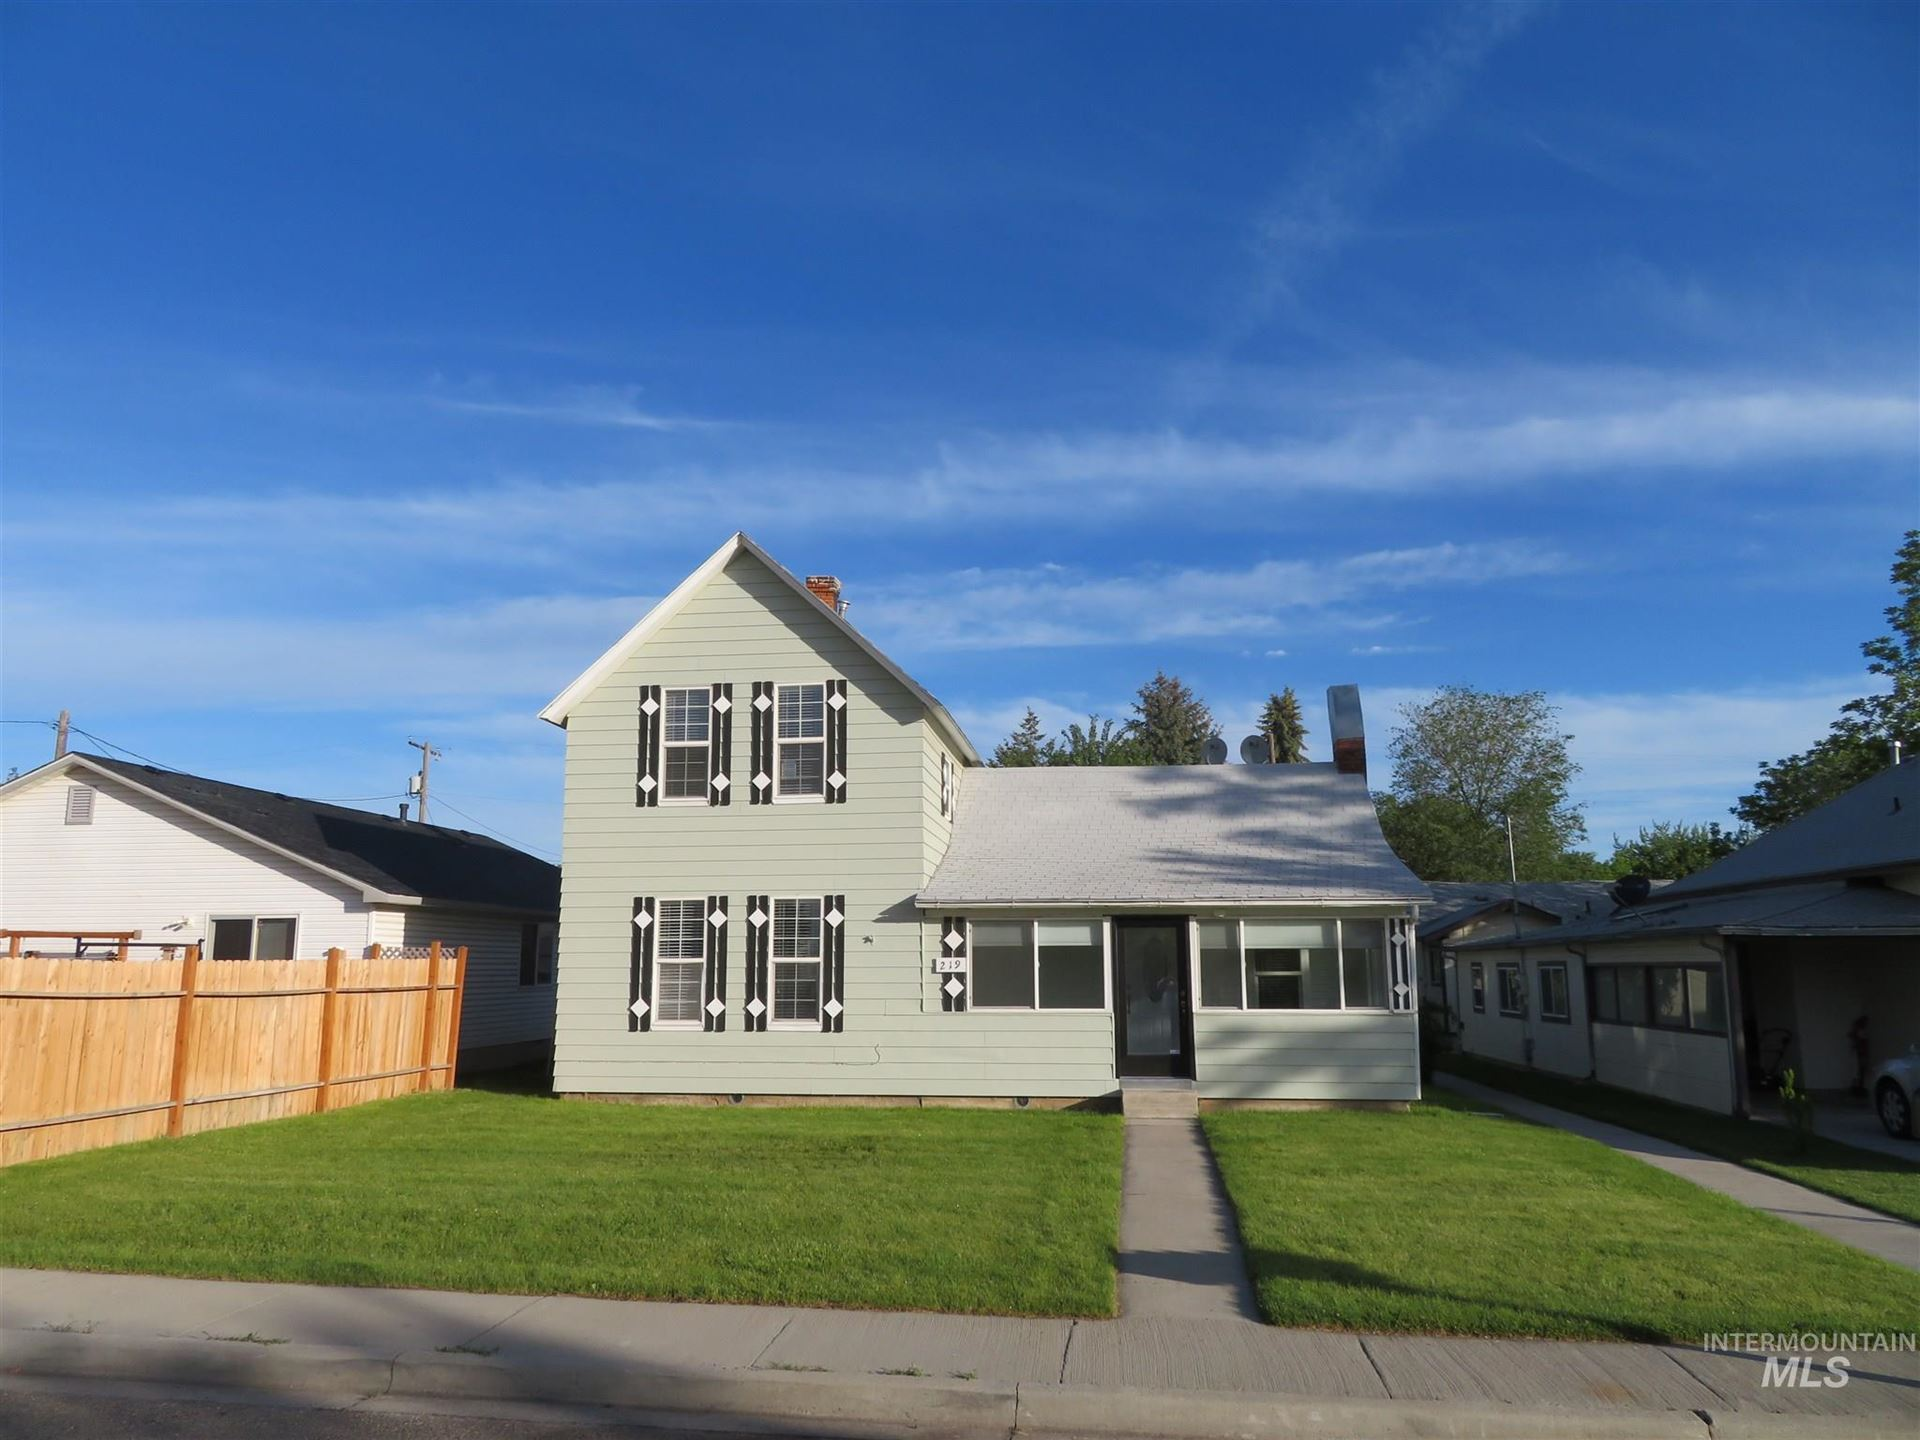 219 & 221 24th Ave S, Nampa, ID 83651-4473 - MLS#: 98775613